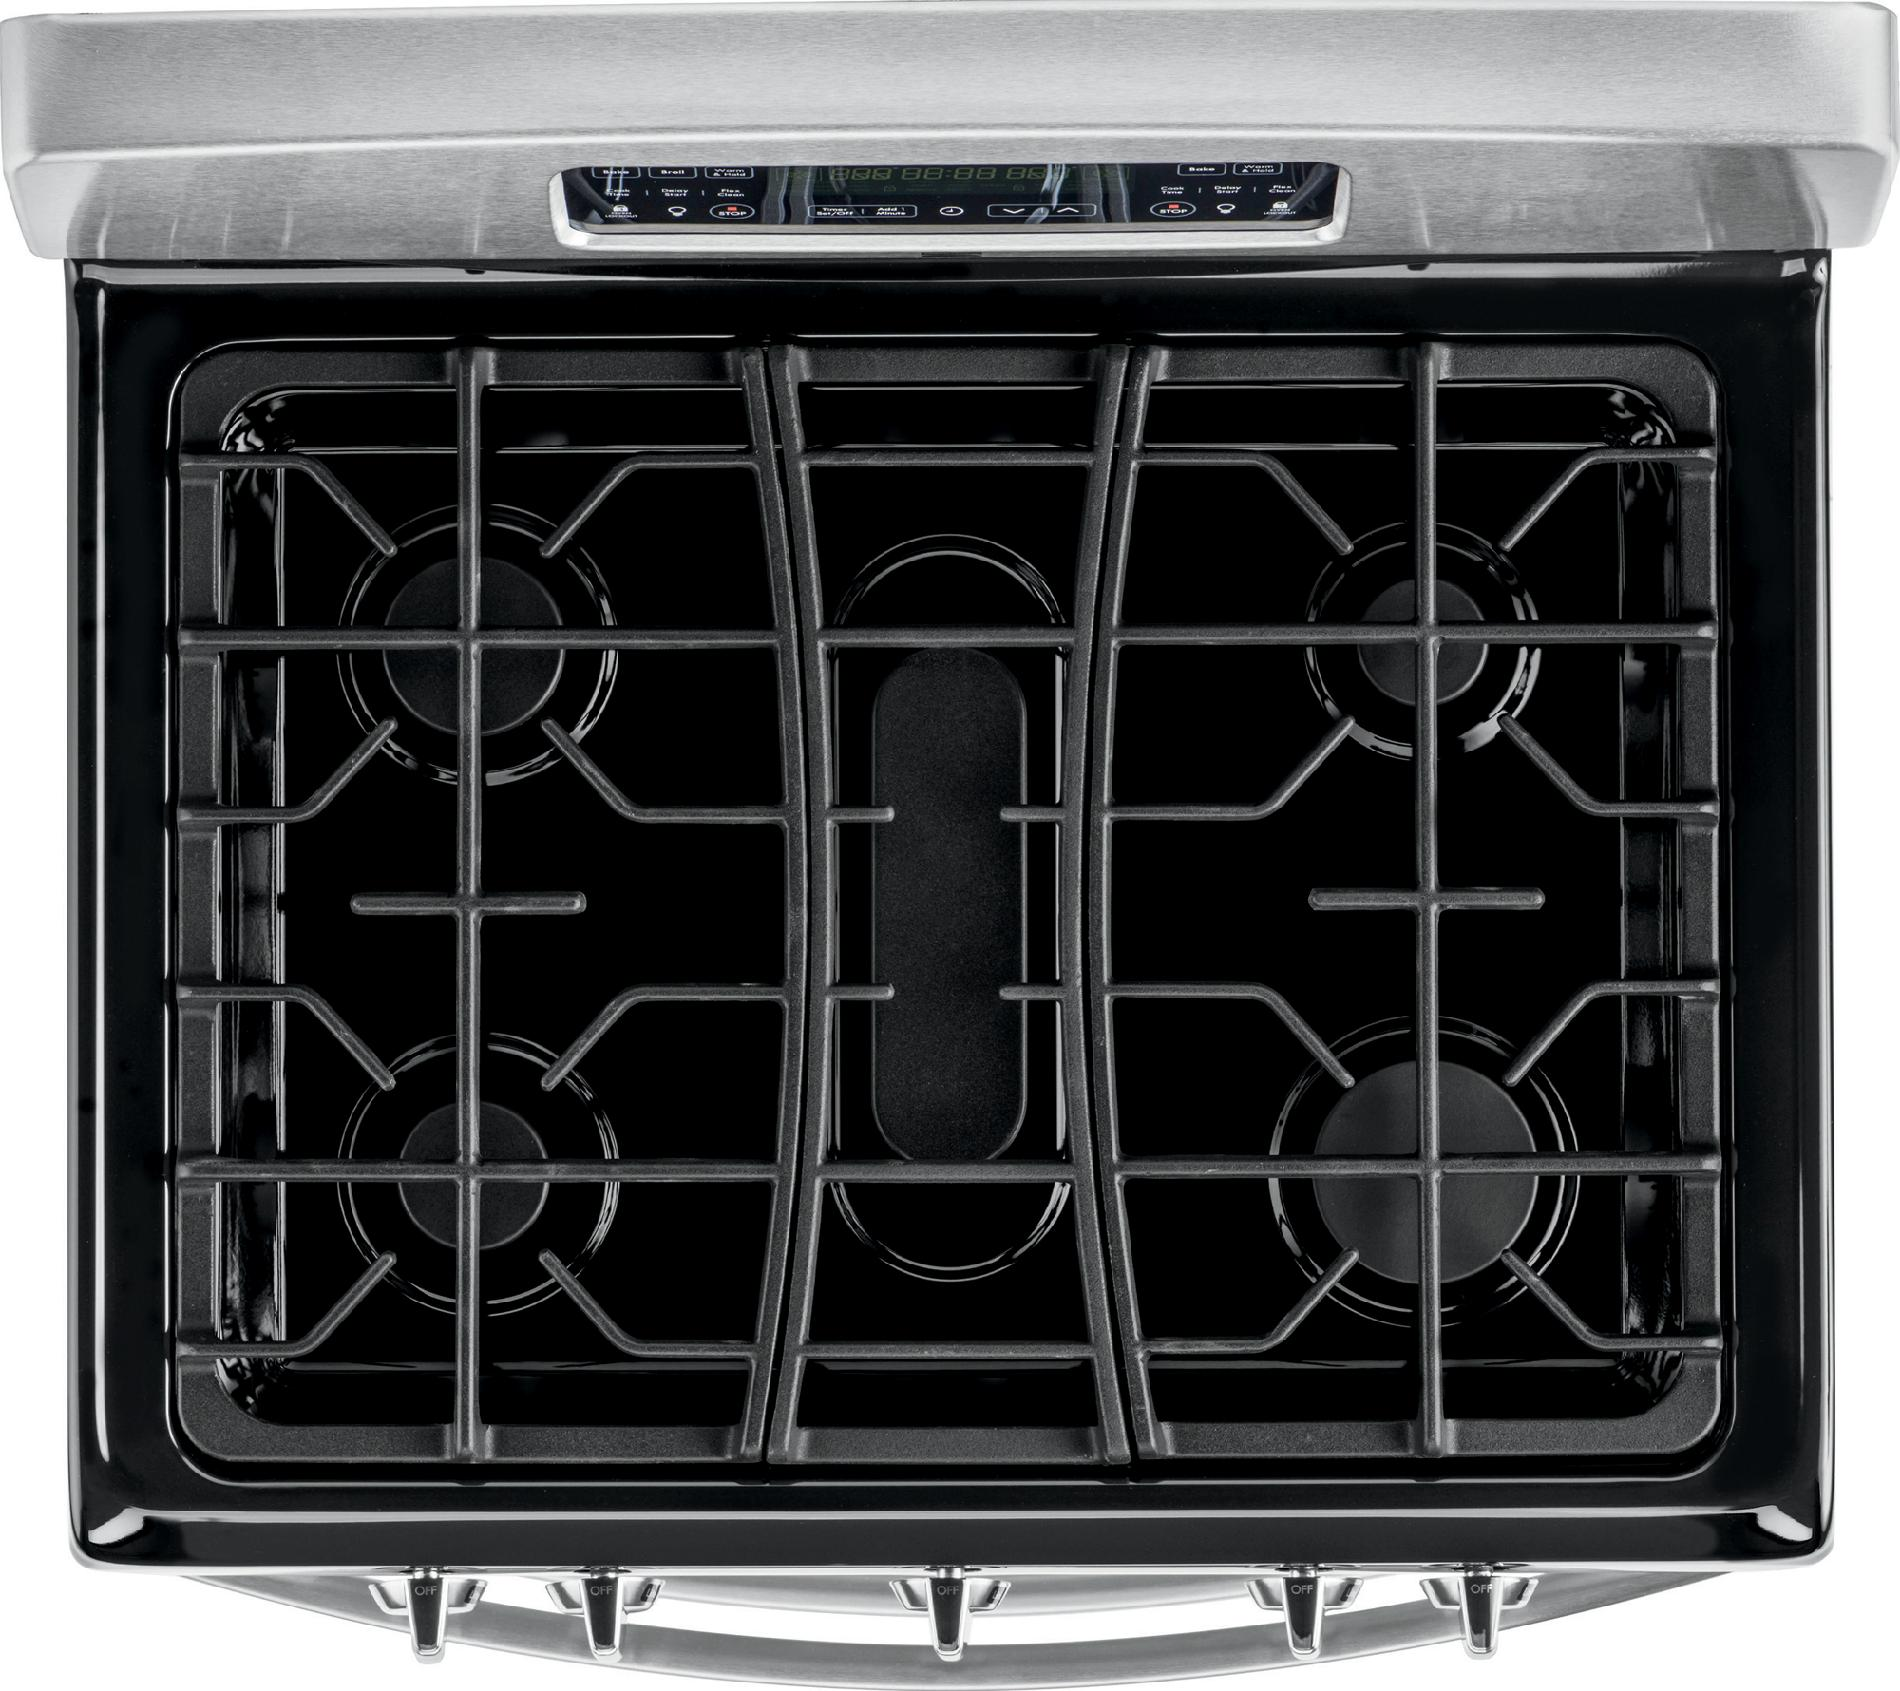 Kenmore 5.9 cu. ft. Double-Oven Gas Range - Stainless Steel w/ Black